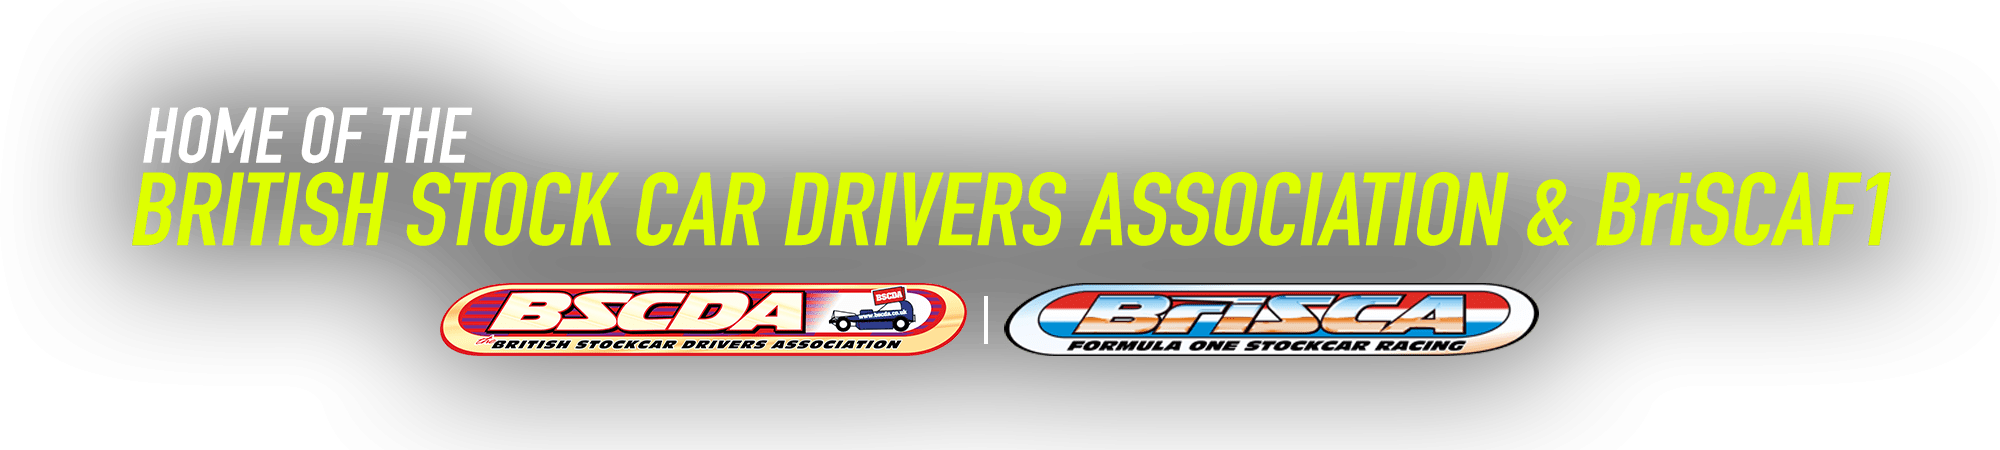 British Stock Car Drivers Association